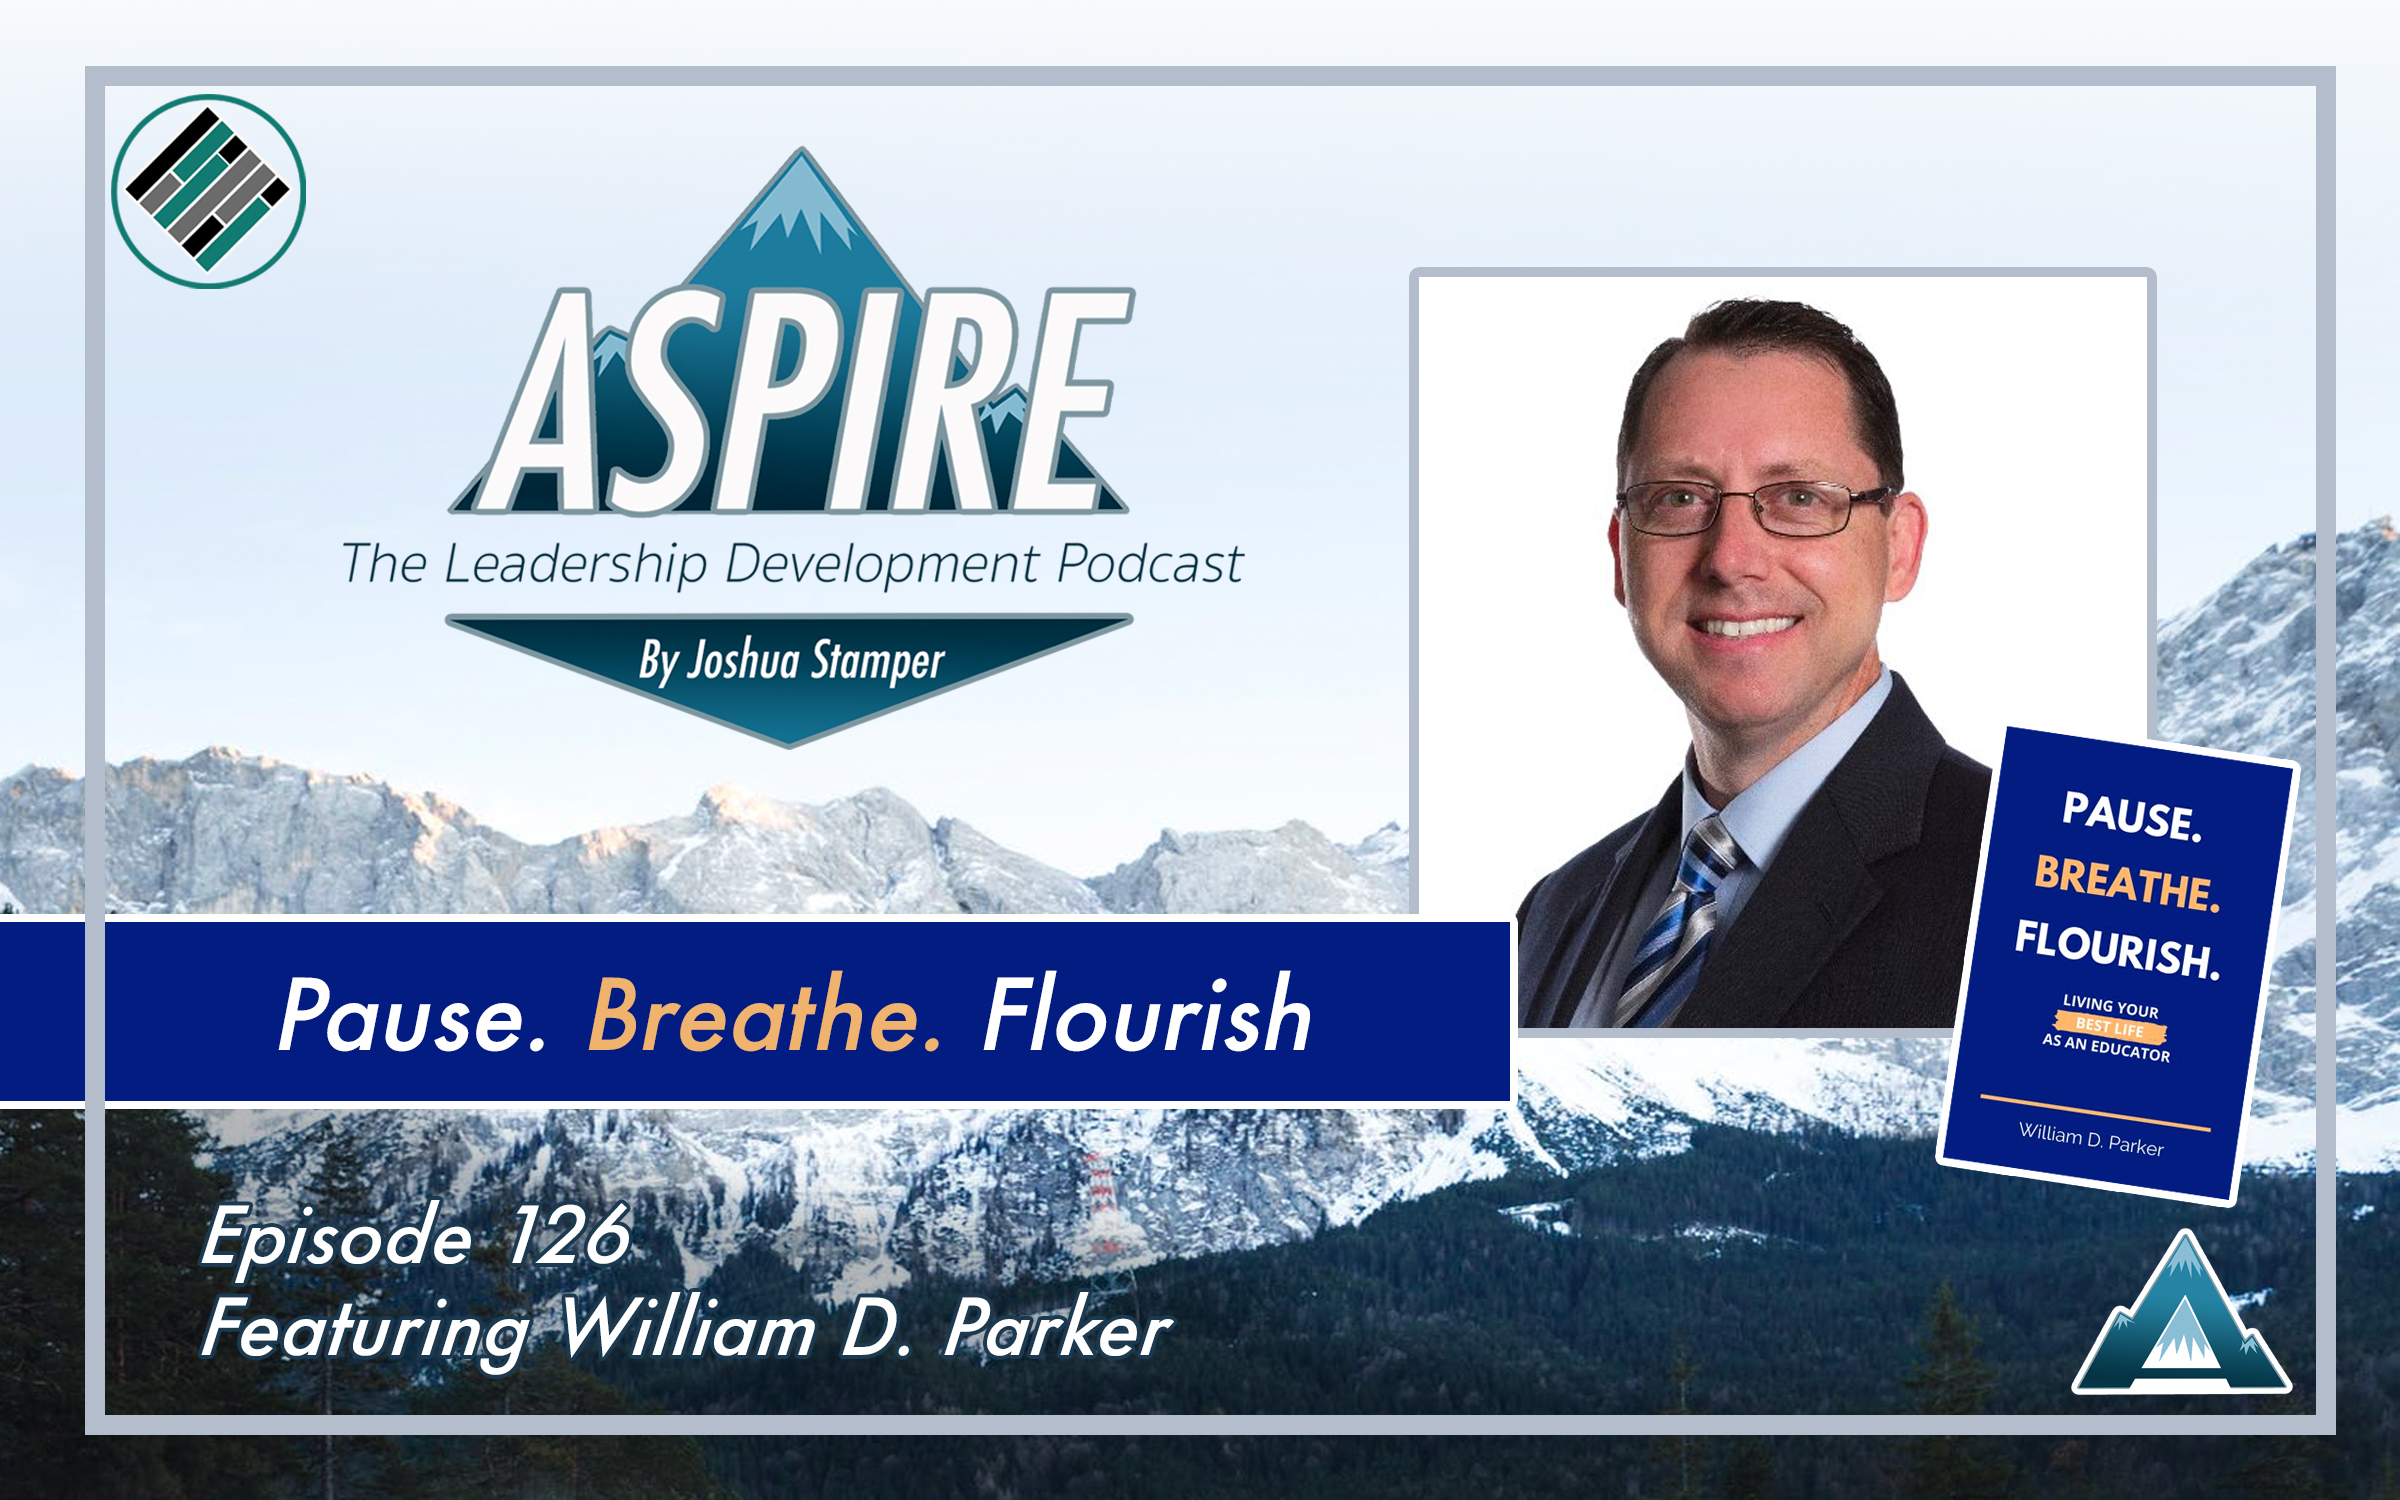 William D. Parker, Joshua Stamper, Aspire: The Leadership Development Podcast, Pause. Breathe. Flourish.